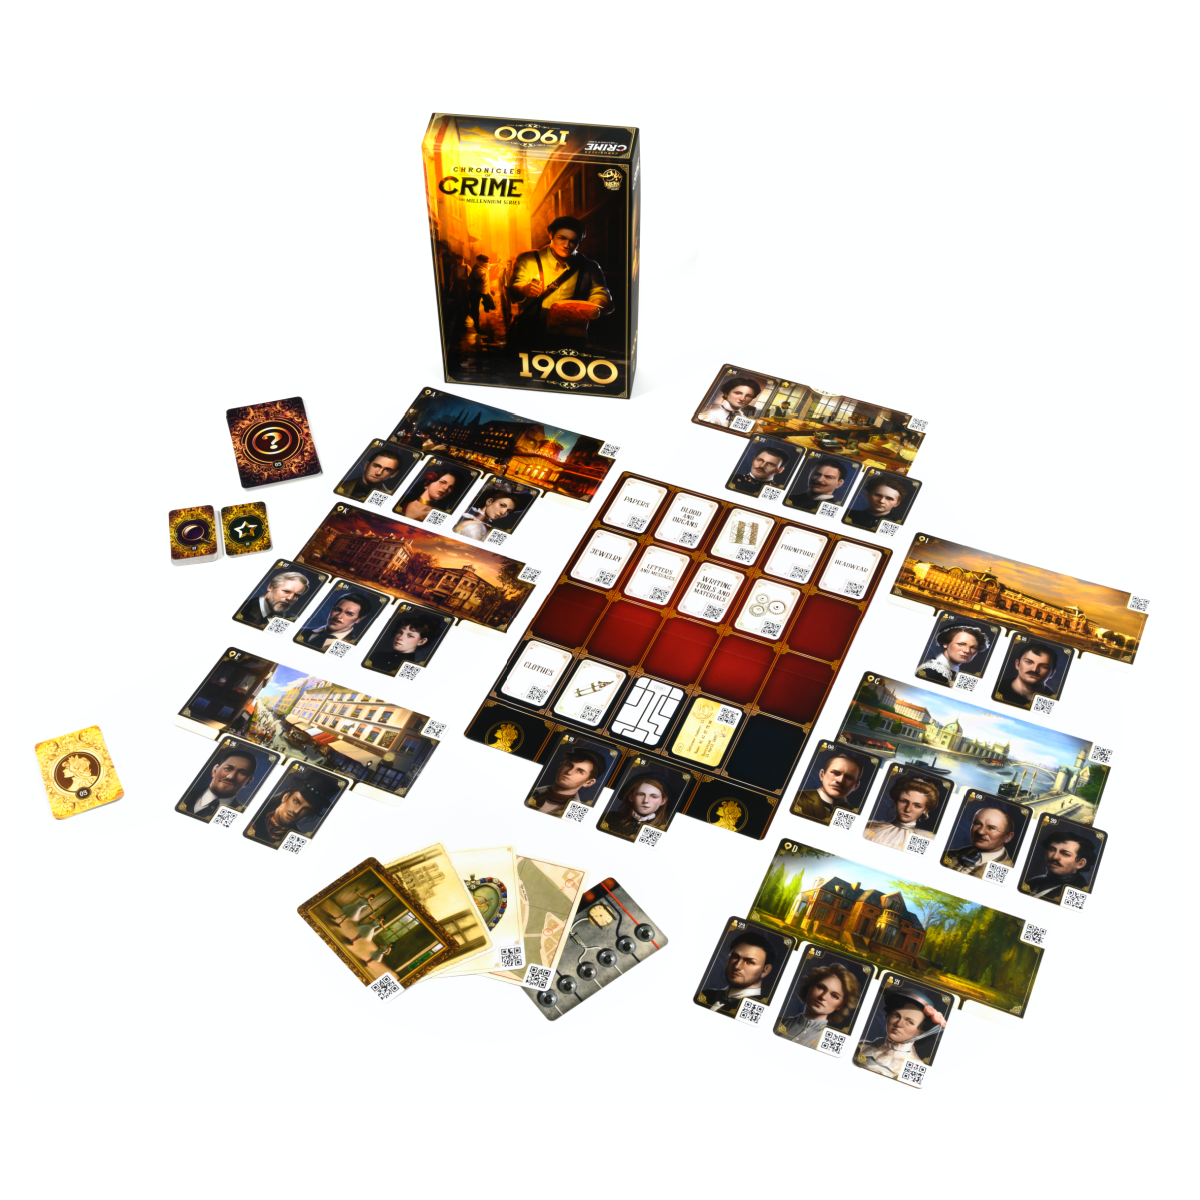 Chronicles of Crime - 1900   44,99$